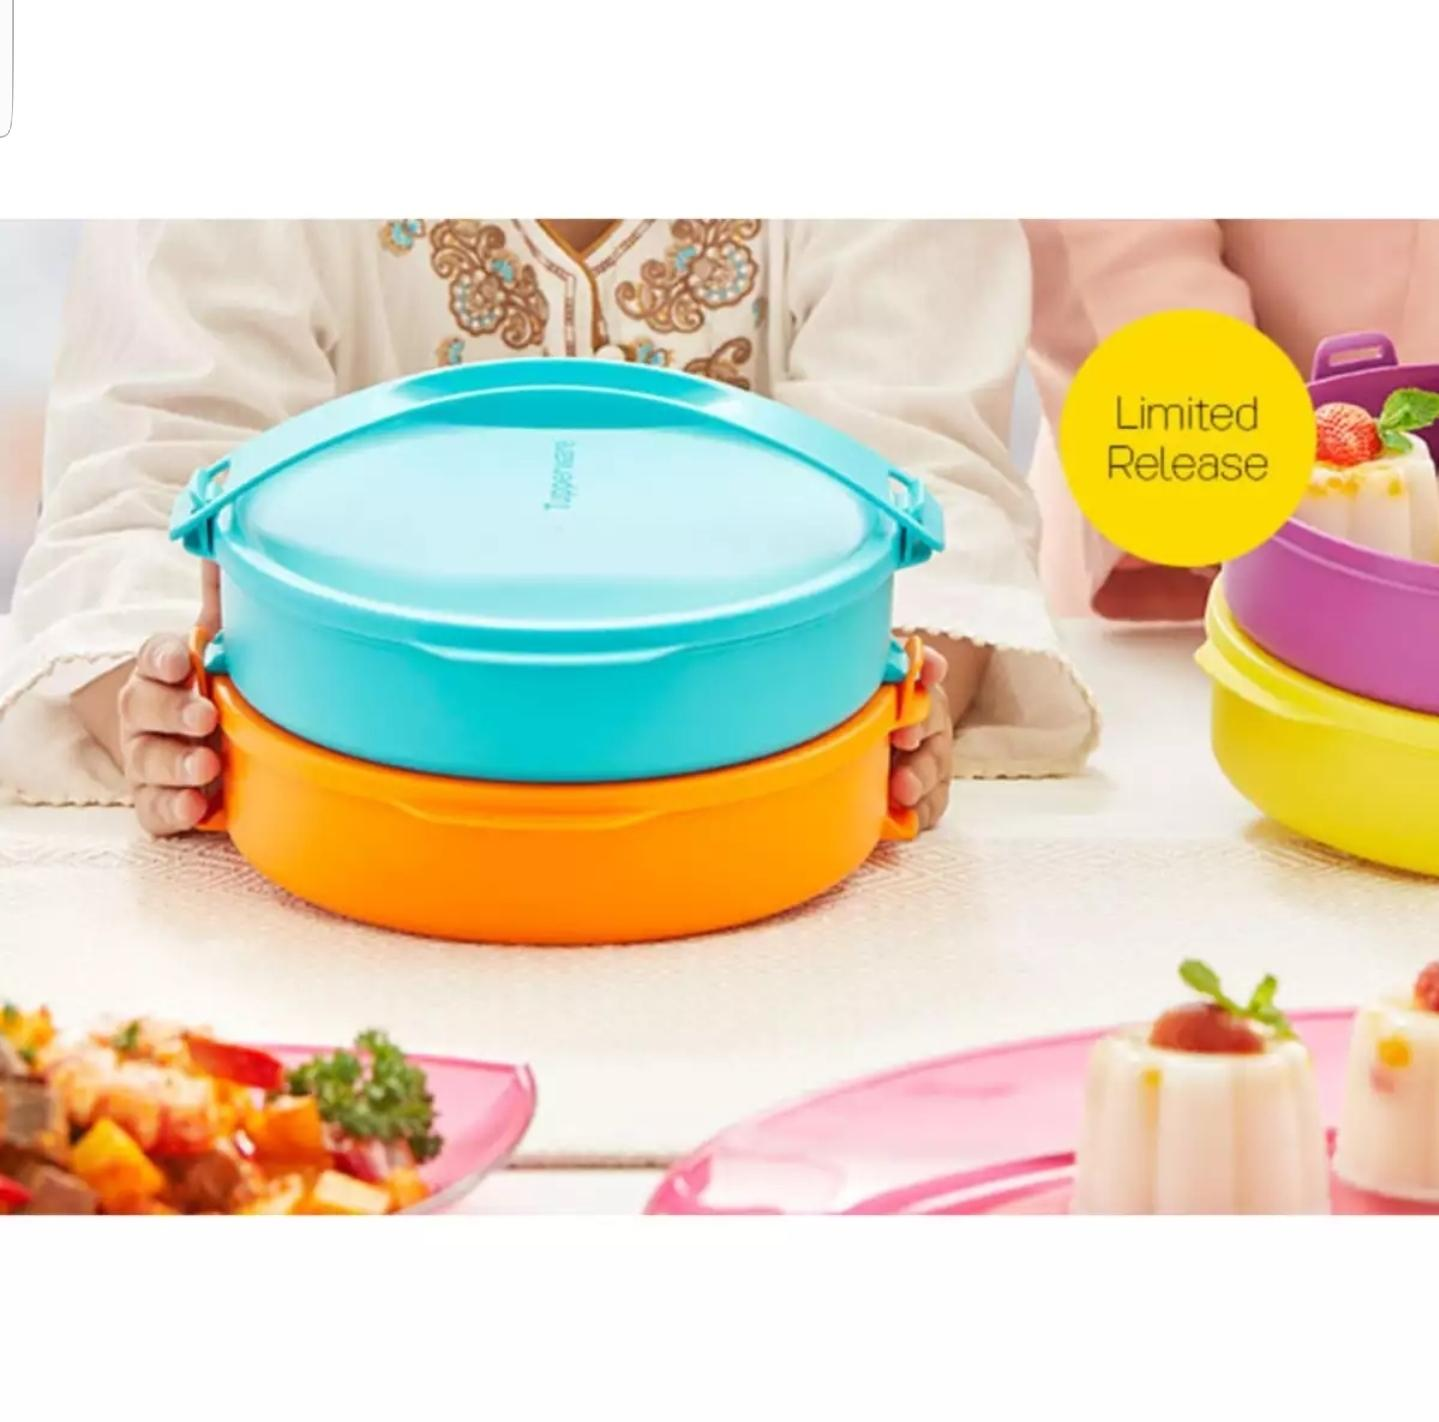 Buy Sell Cheapest Tupperware New Click Best Quality Product Deals To Go Rantang 4 Susun Round Orange Tosca